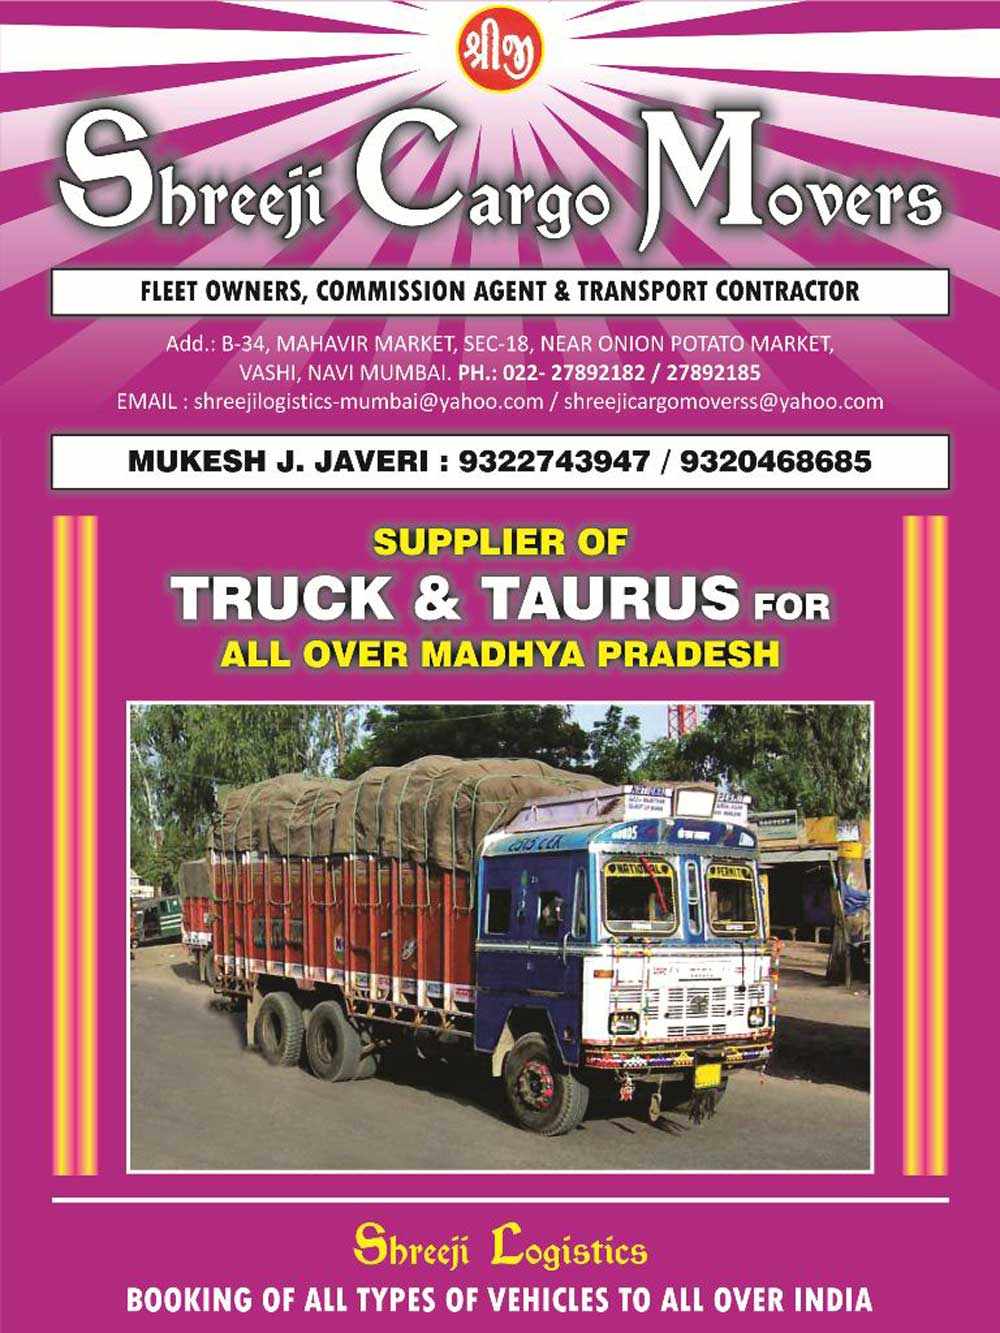 Shreeji Cargo Movers